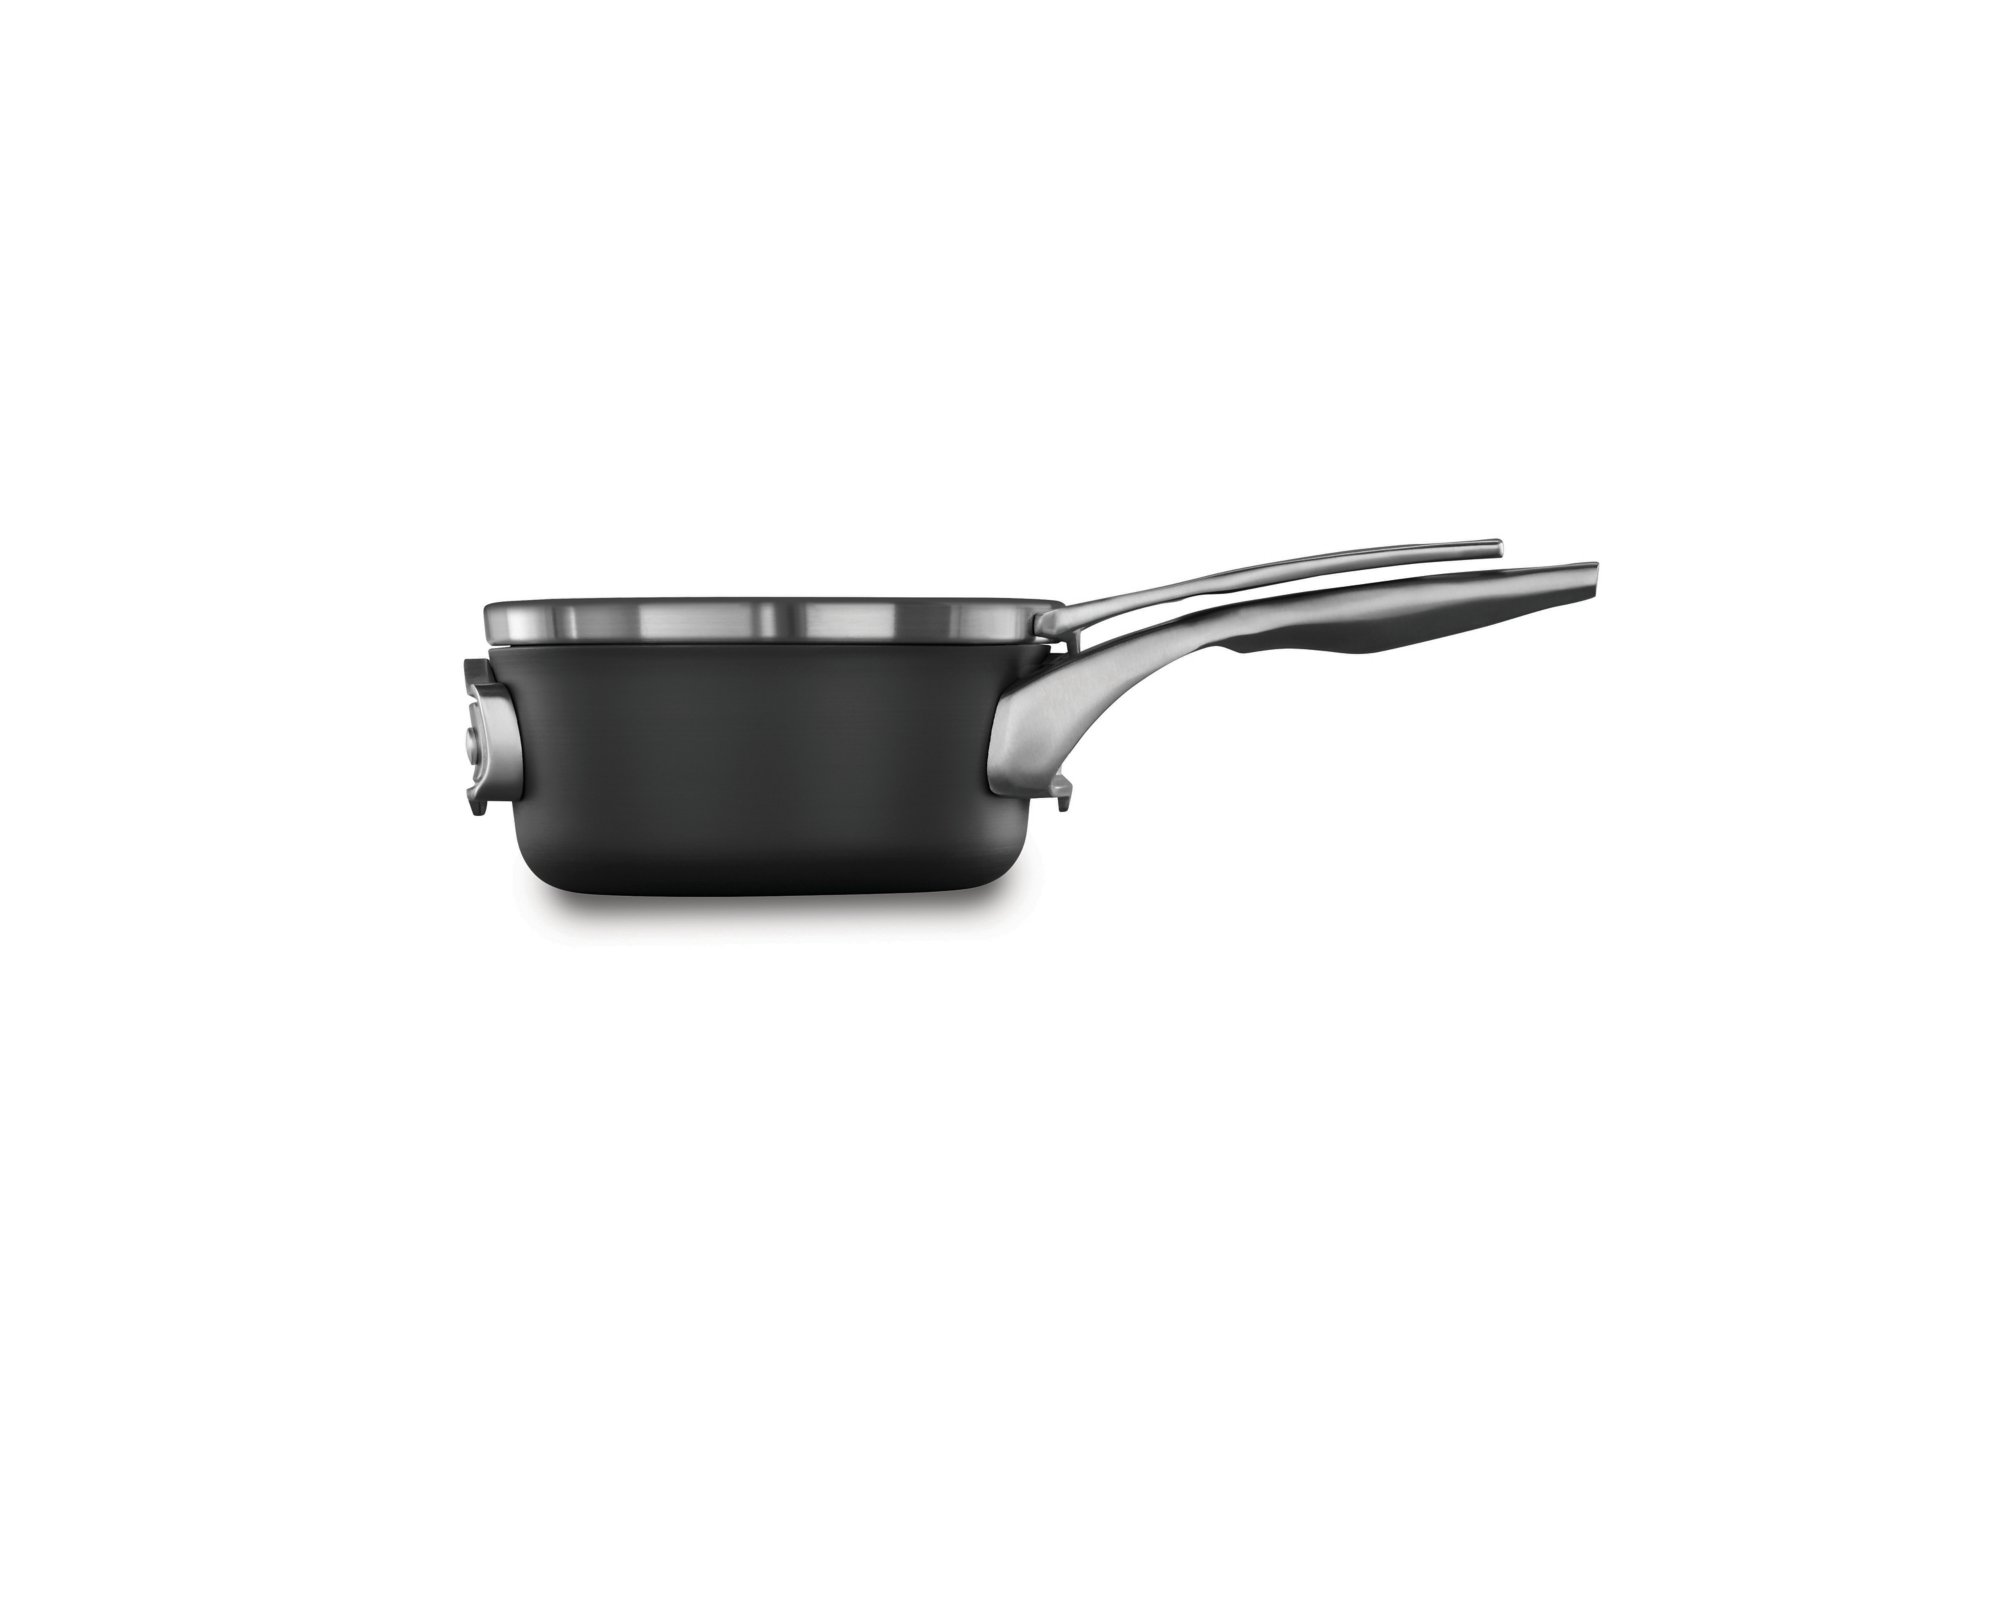 Calphalon Premier? Space Saving Hard Anodized Nonstick 1.5 qt. Sauce Pan with Cover